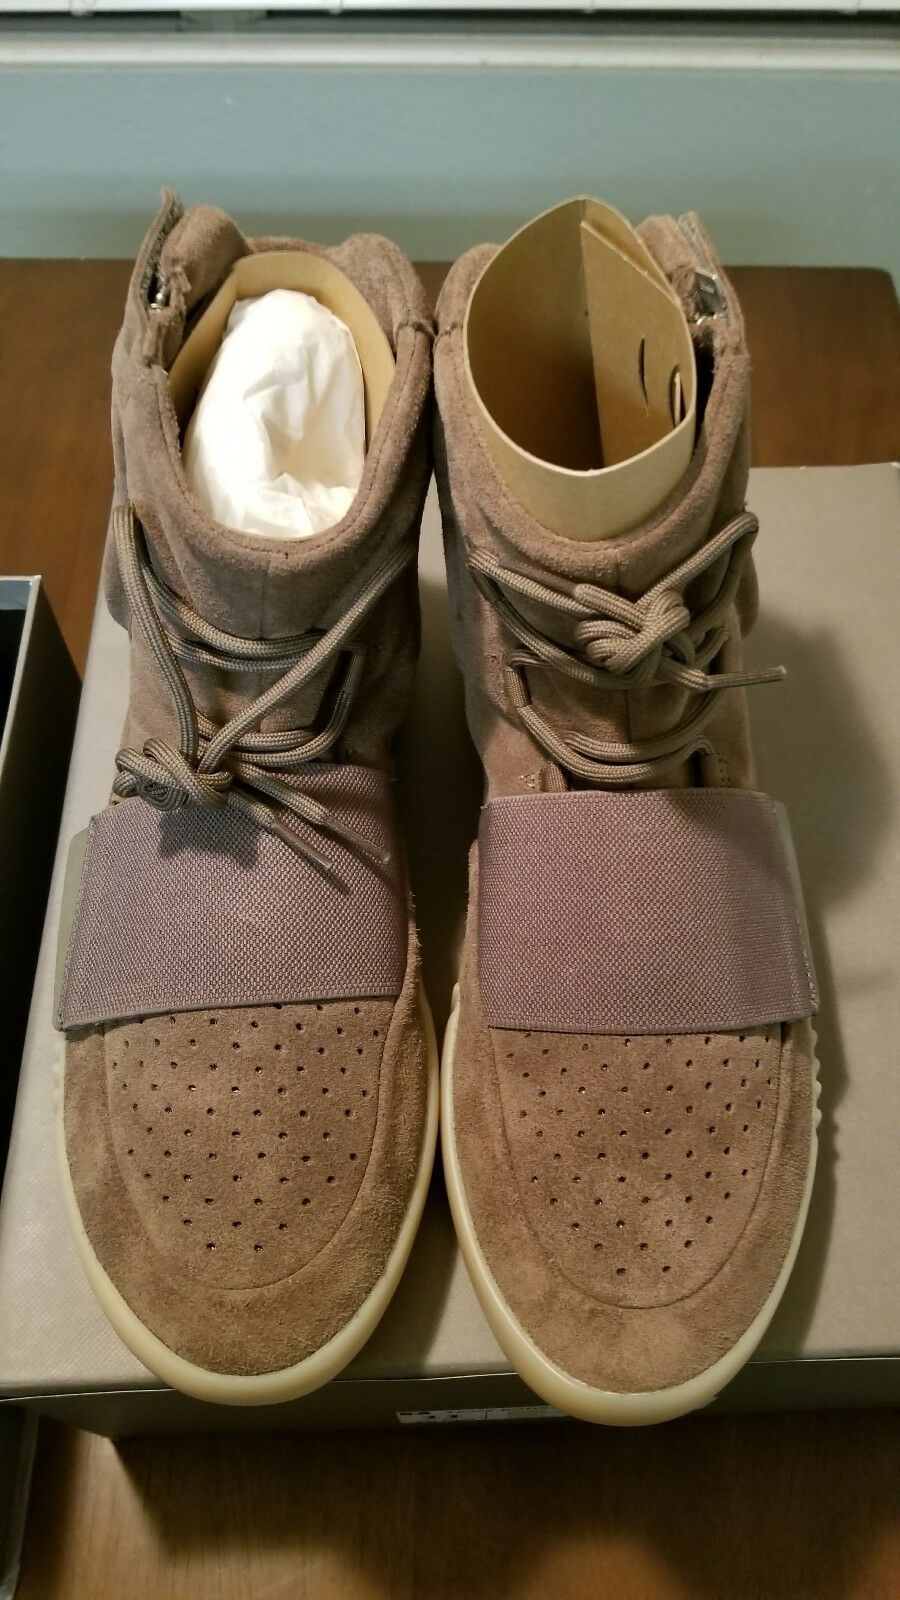 Adidas Yeezy Boost 750 Light Brown Chocolate Gum BY2456 11 v2 Kanye West DS